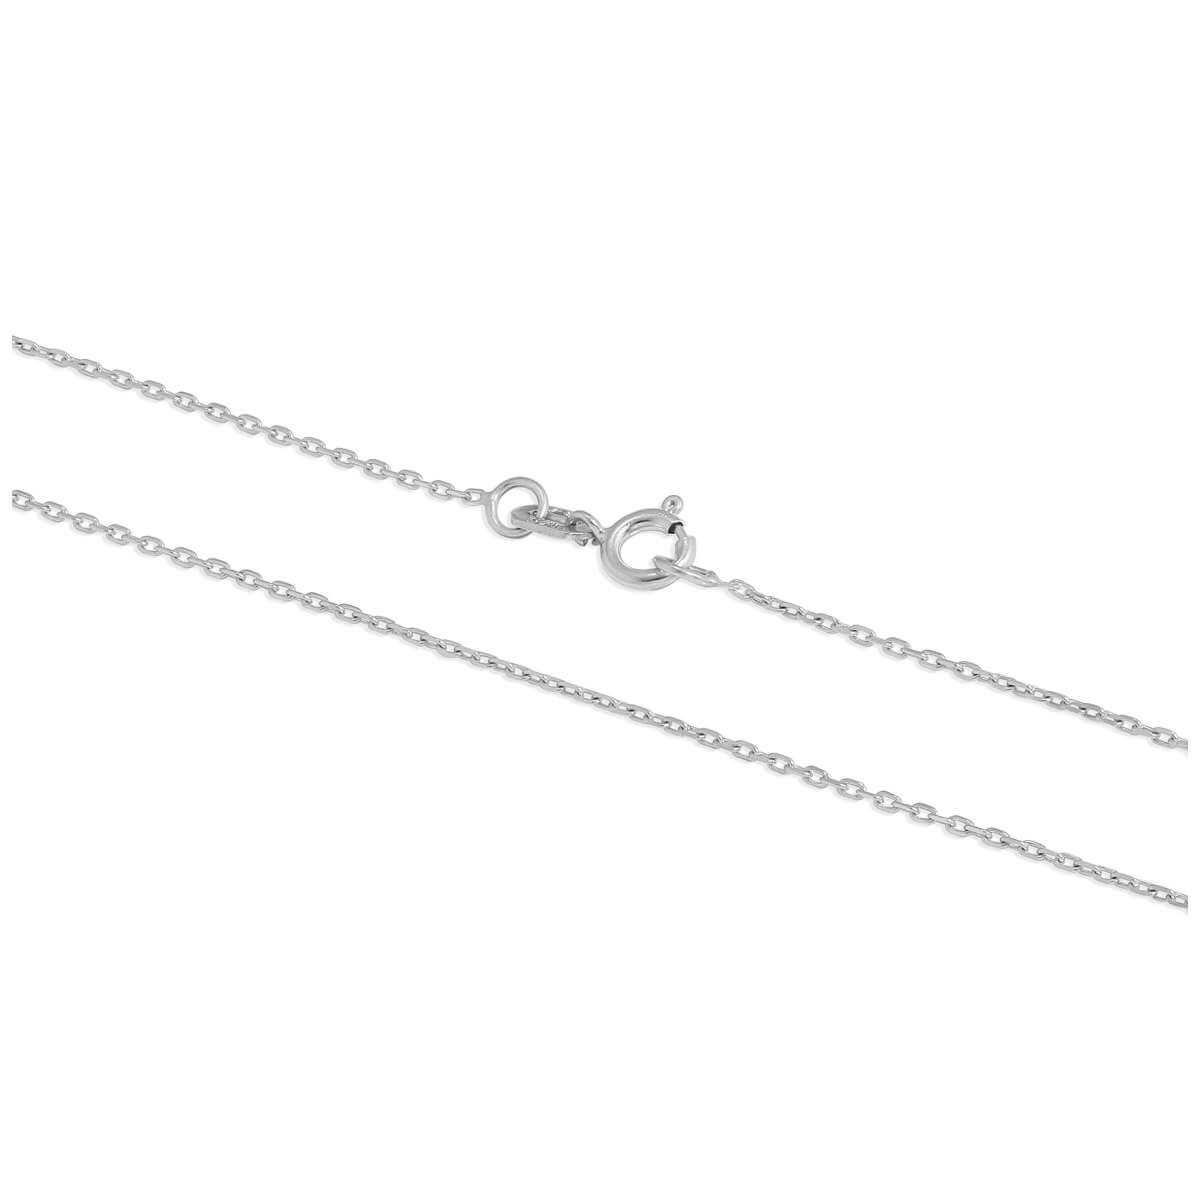 9ct White Gold Faceted Trace Chain 16 - 22 Inches